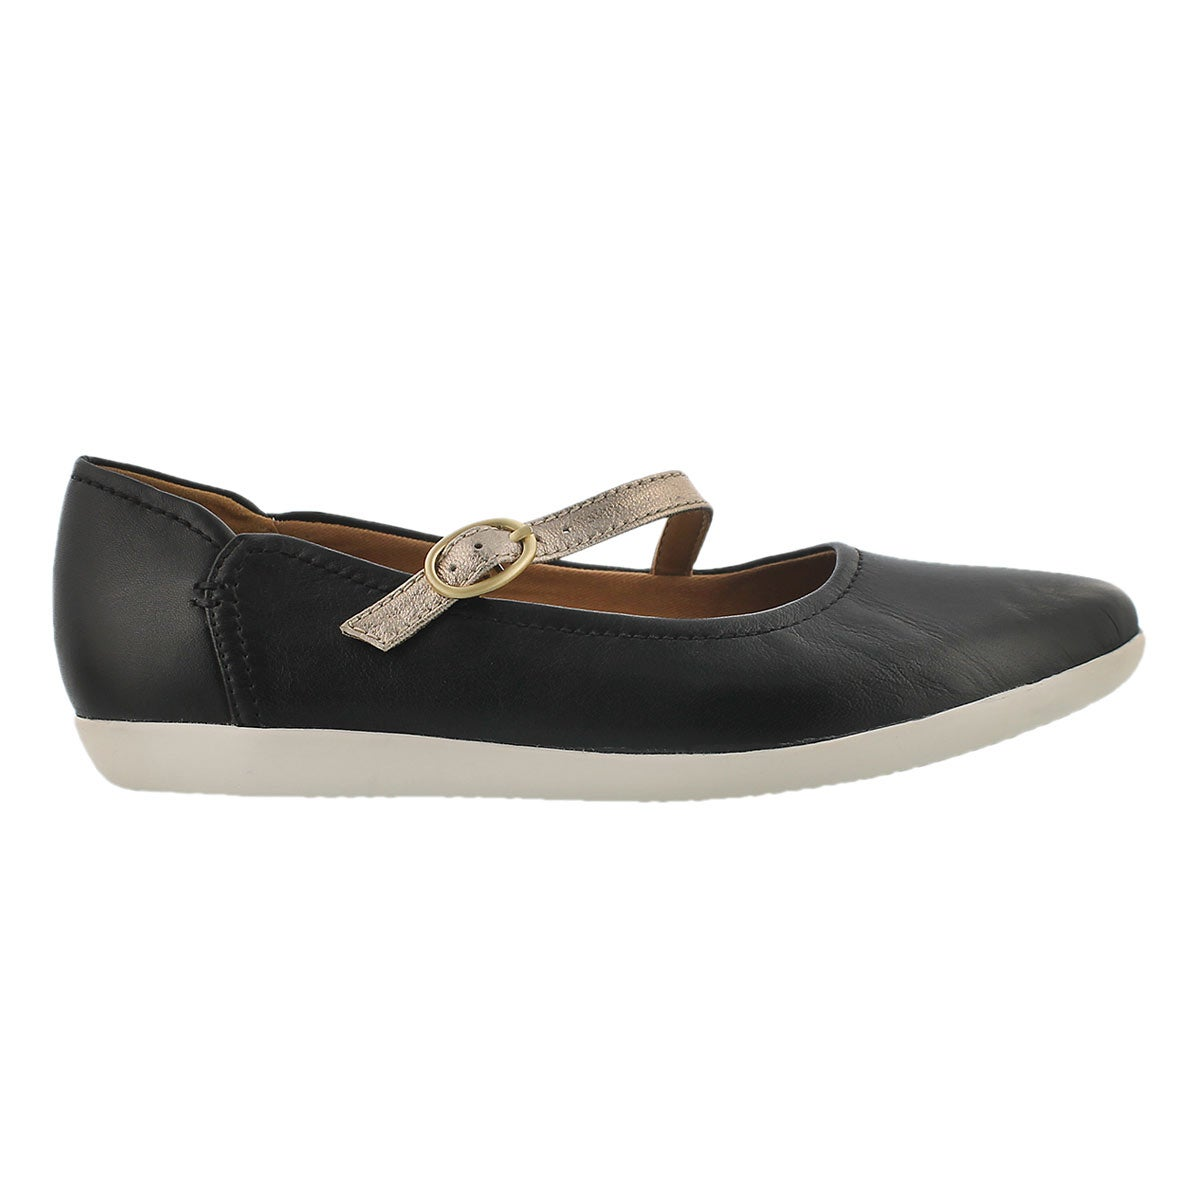 Lds Helina Amo black casual mary jane